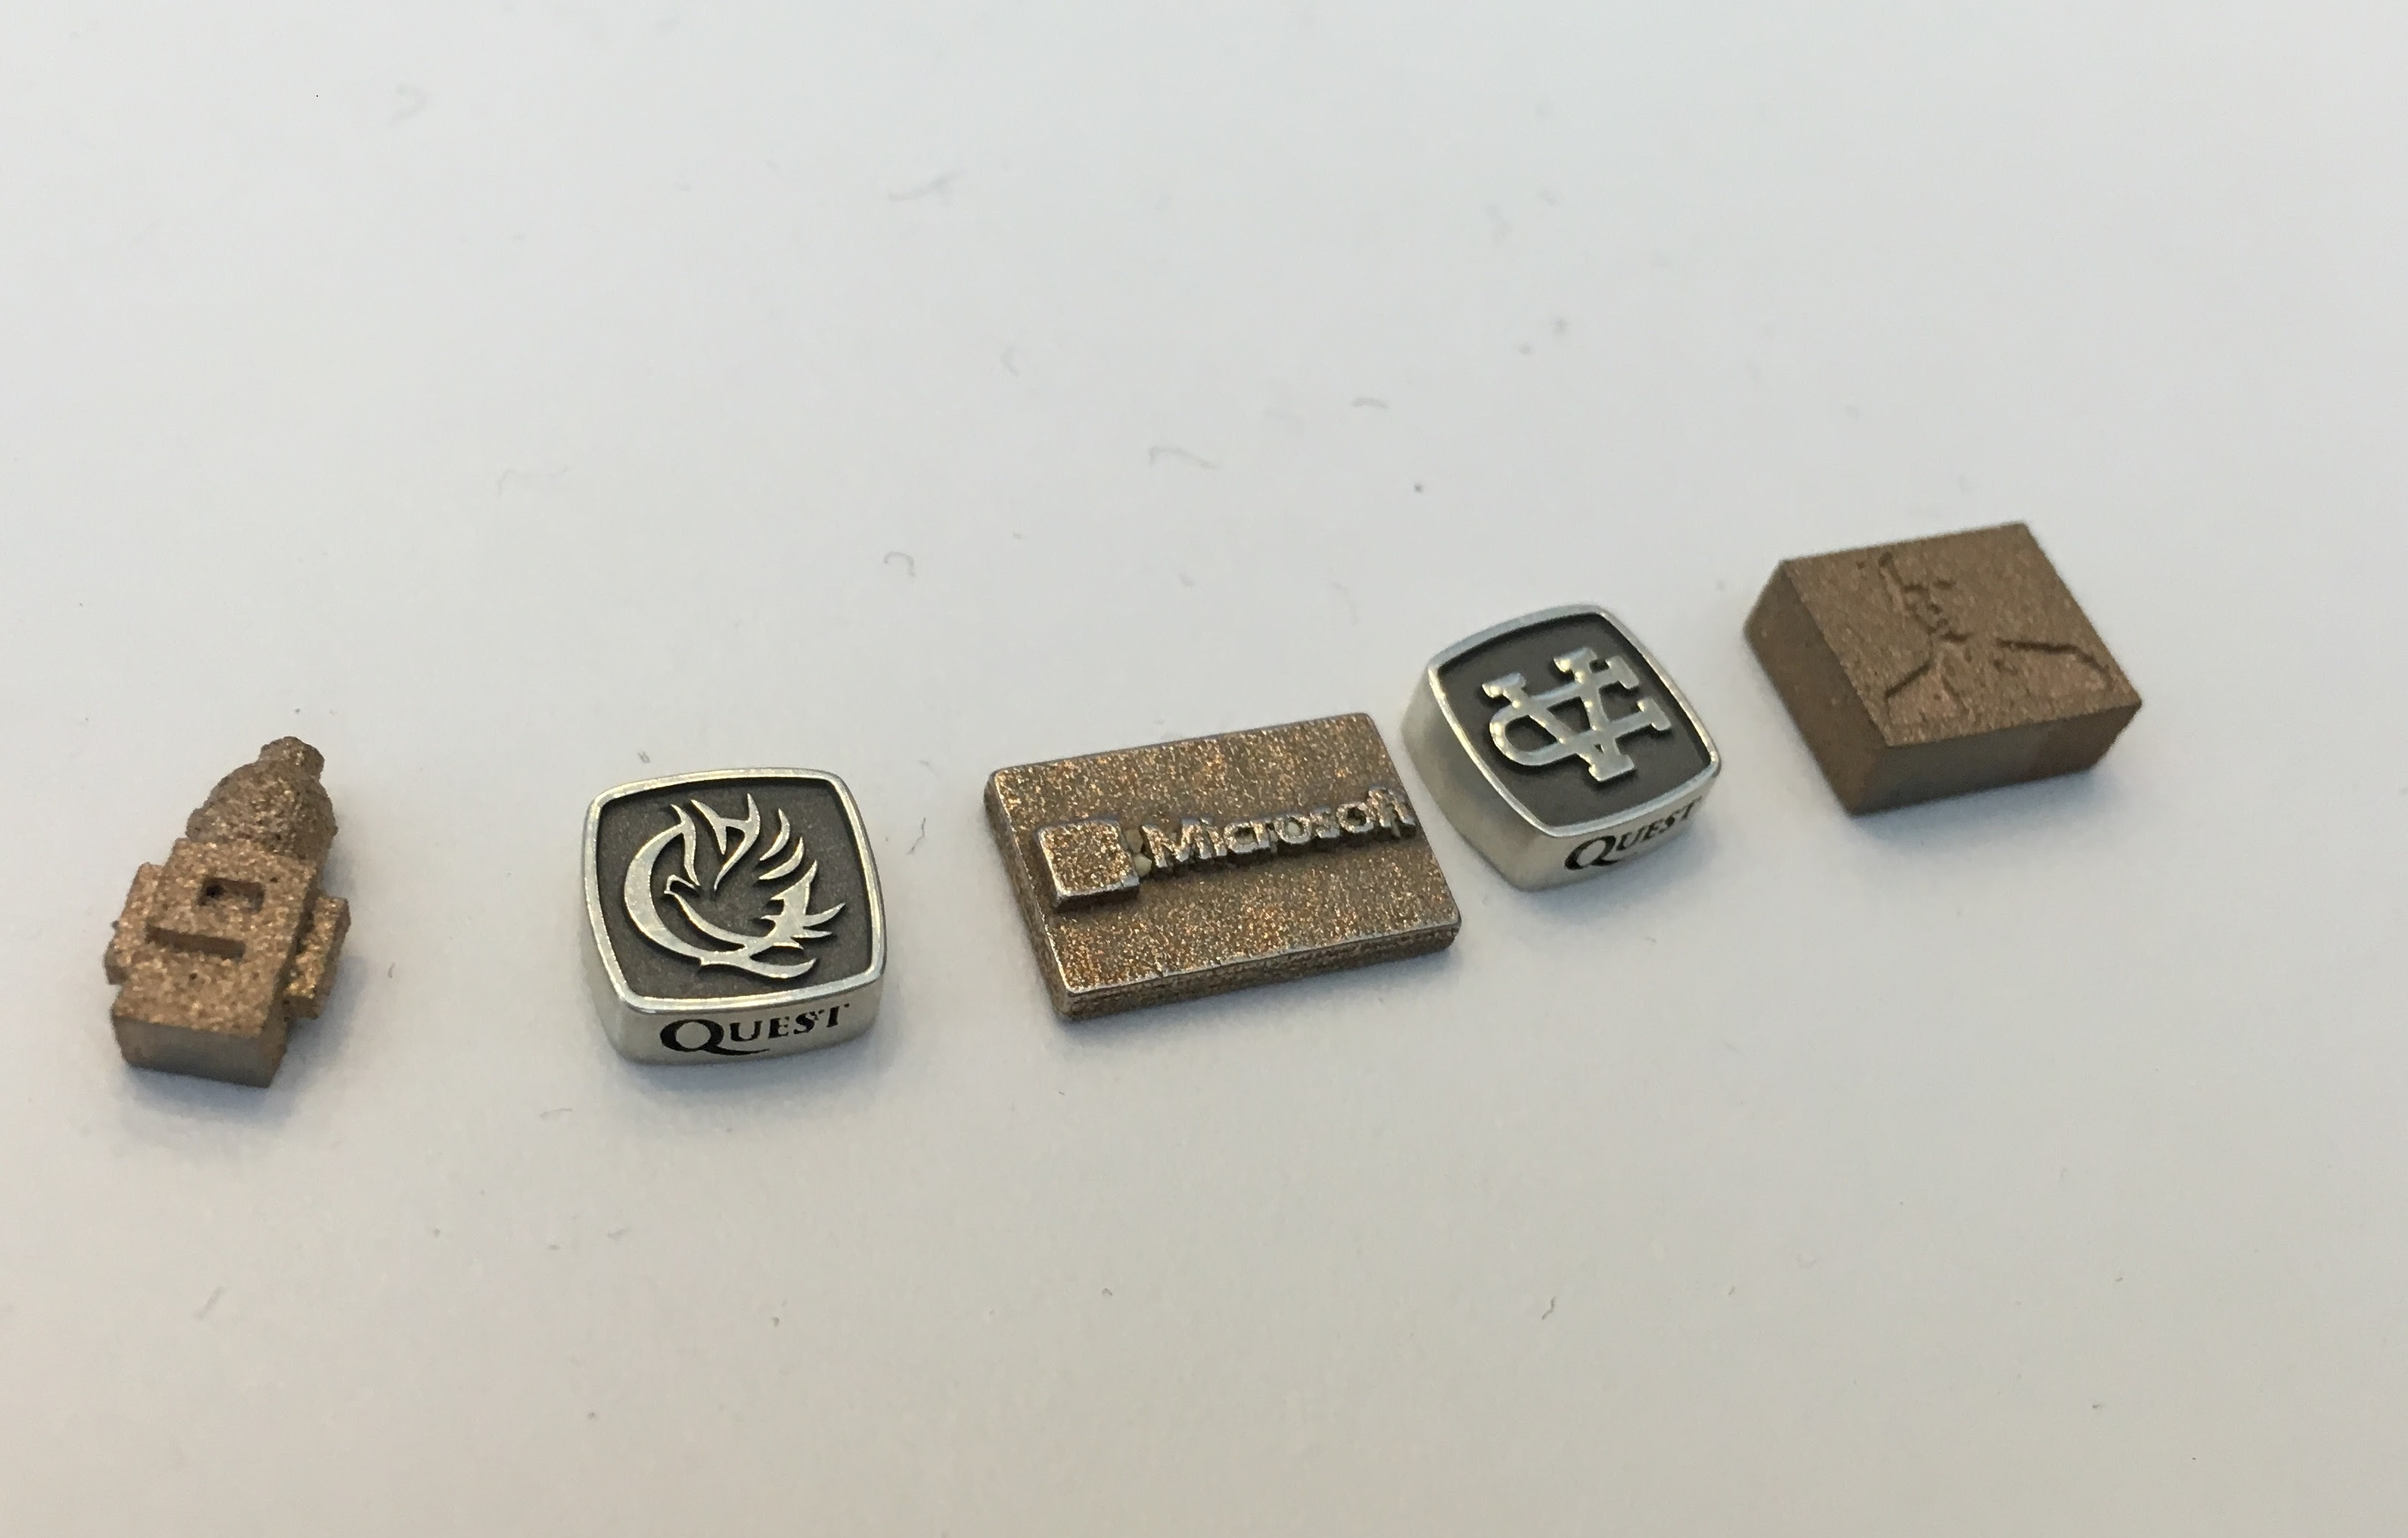 Some of the pieces that will be tested in space. The one on the far left represents Microsoft's Channel 9. The middle one is Microsoft's logo. The one of the far right is a bust of Microsoft chief executive Satya Nadella. The second and fourth are logos of the Valley Christian Schools.